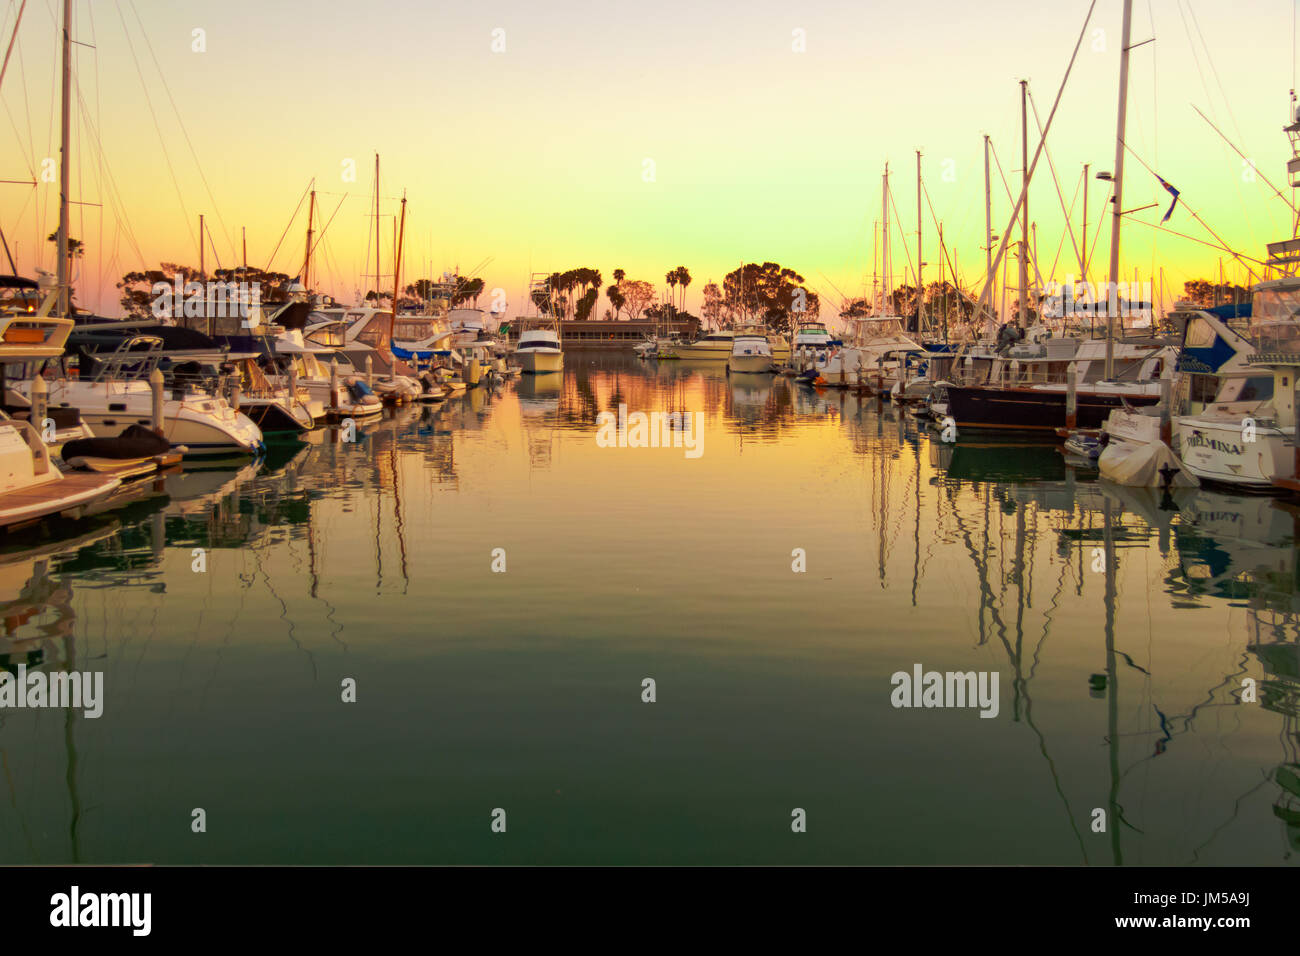 Dana Point Harbor,California, brilliant colors of the sunset, boats moored for the evening, reflections on the water - Stock Image